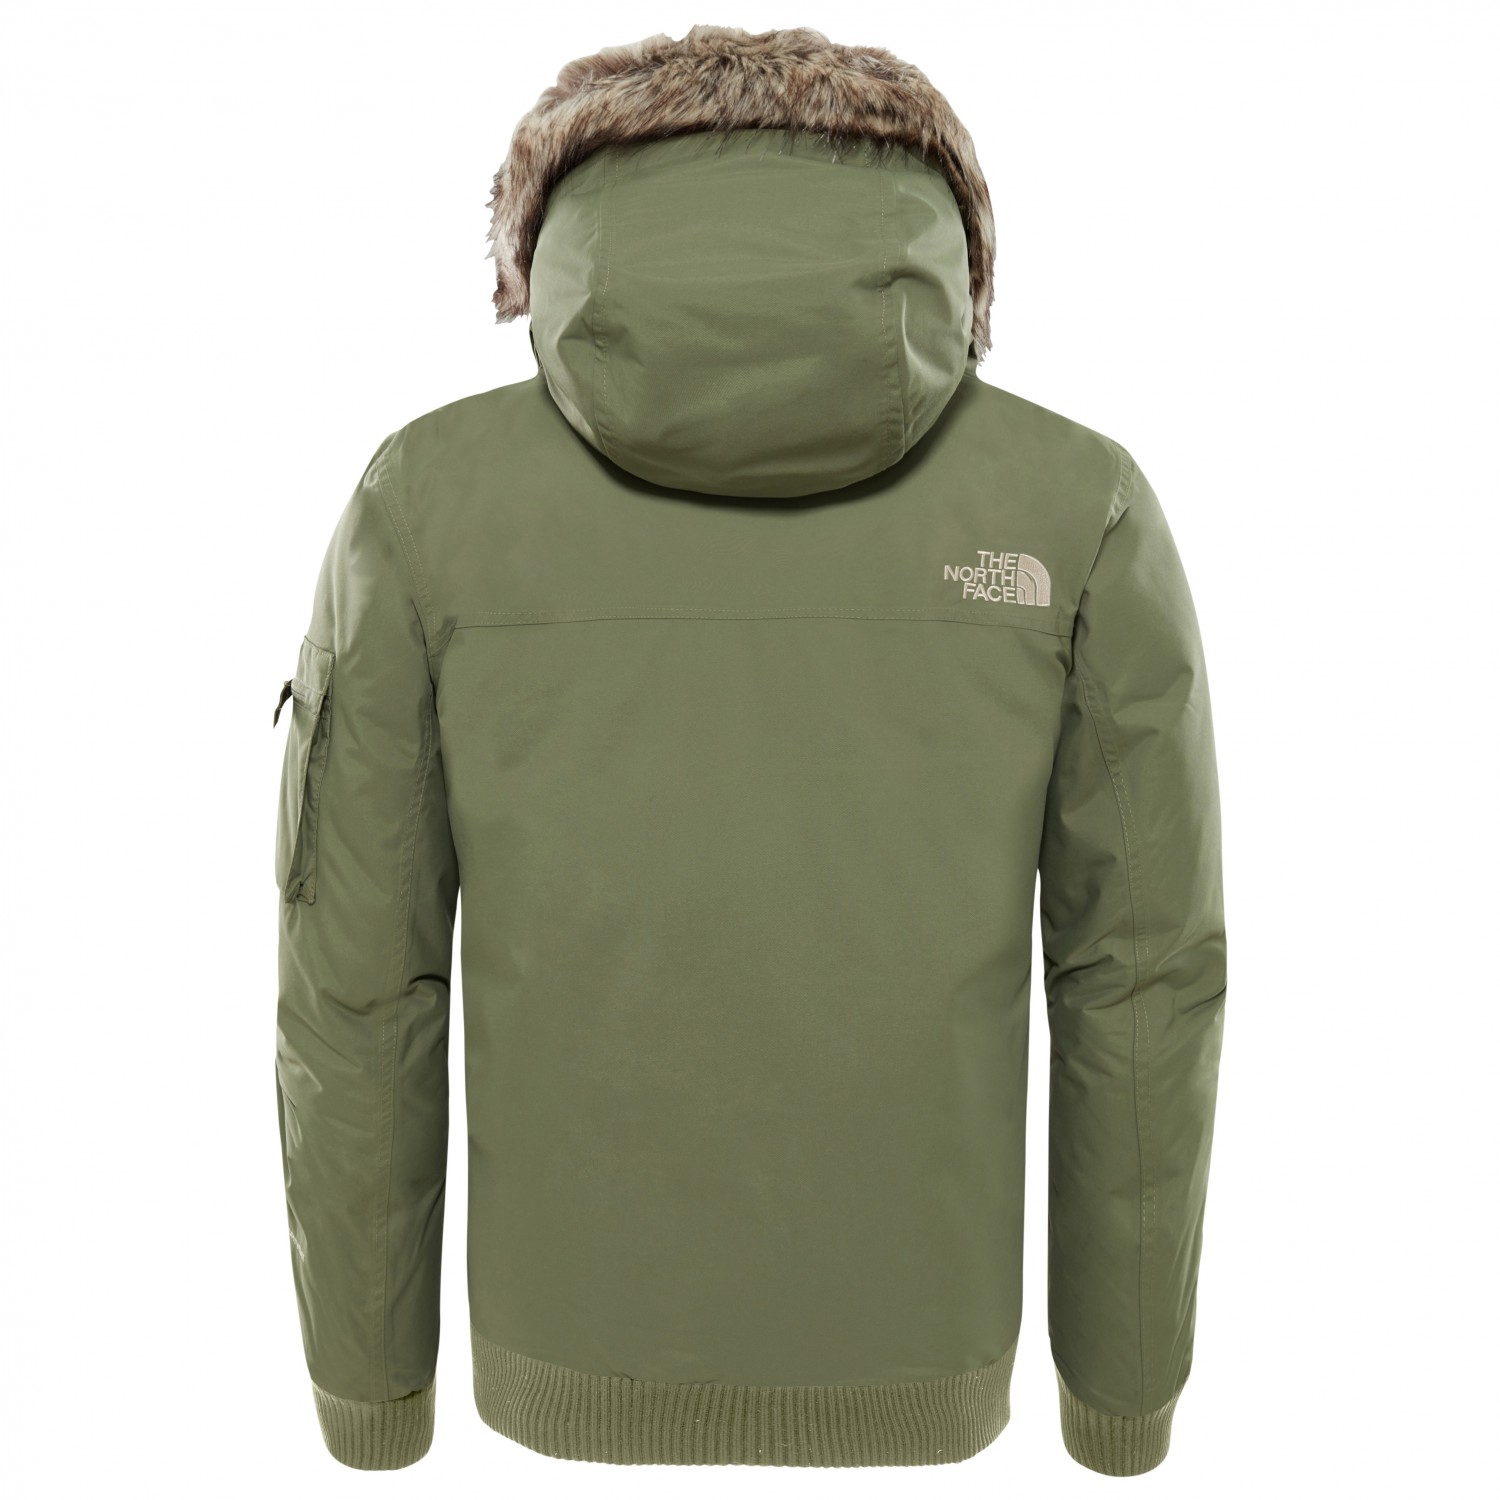 The Face Invernale Acquista Giacca North Jacket Gotham Uomo rgwnPrq5T 9b2cbdaab55f